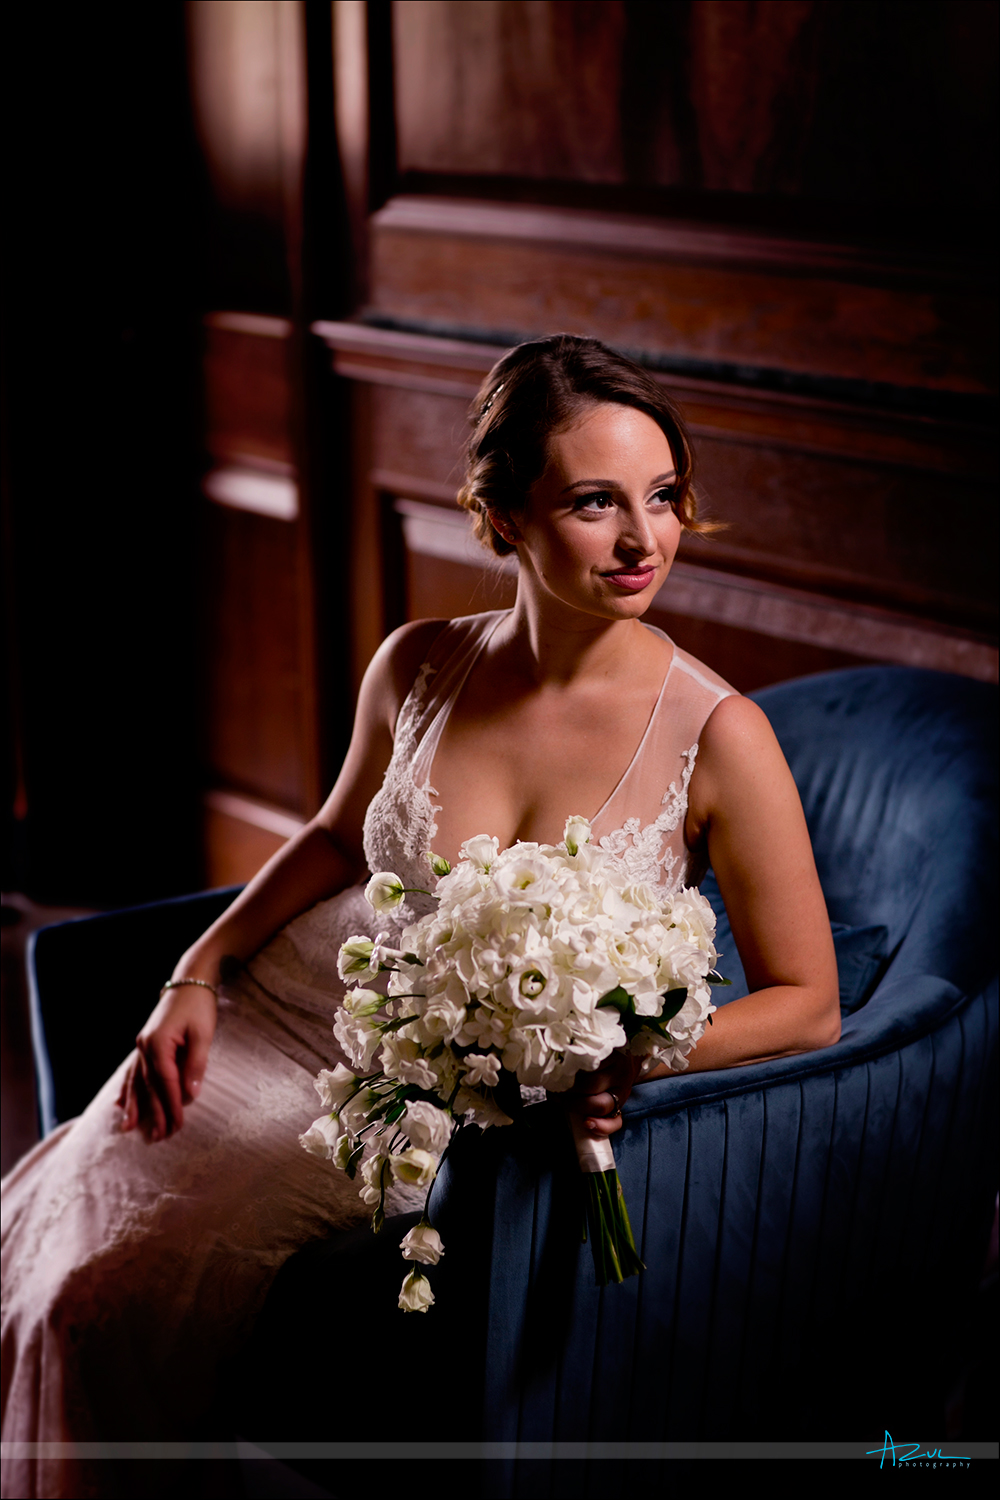 Vintage style bridal portrait with one light technigue for wedding photographers